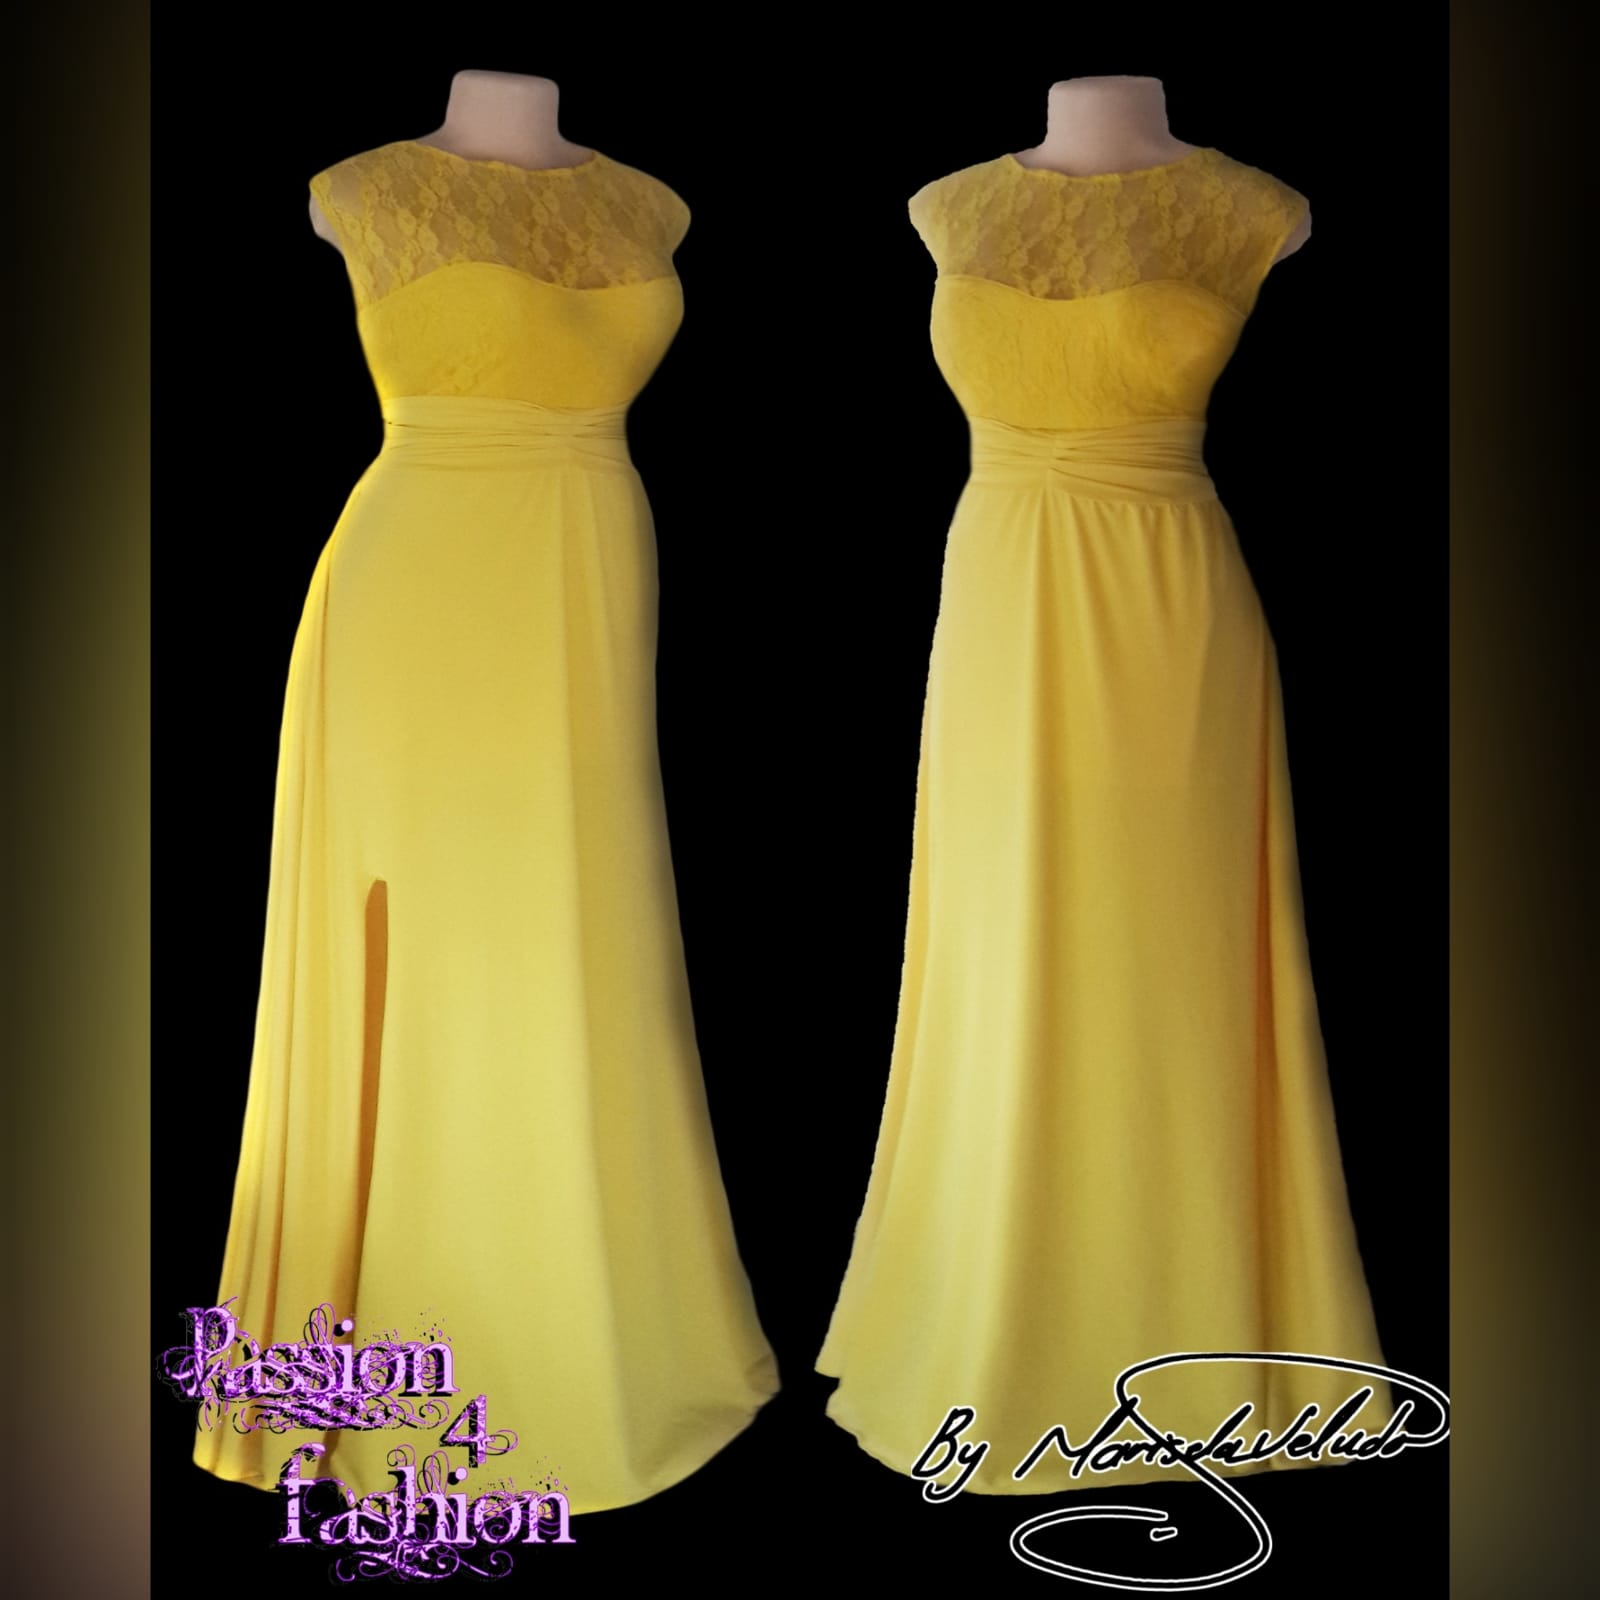 Yellow long evening dress with a lace bodice 2 yellow long evening dress with a lace bodice, rouged belt and a slit. Flowy.